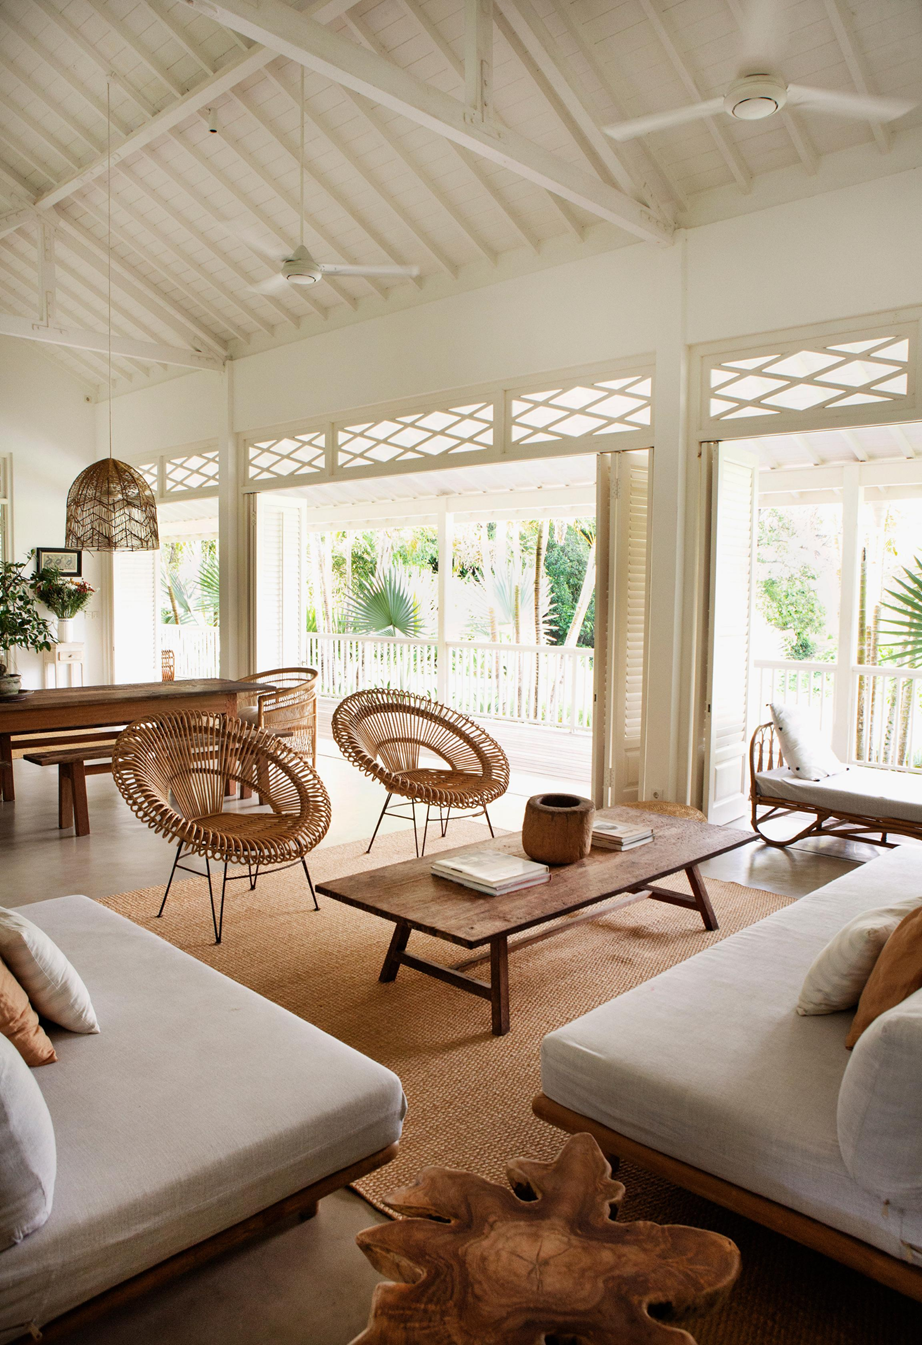 Magali Pascal S French Caribbean Inspired Home In Bali Tropical Living Room Bali Style Home Balinese Decor